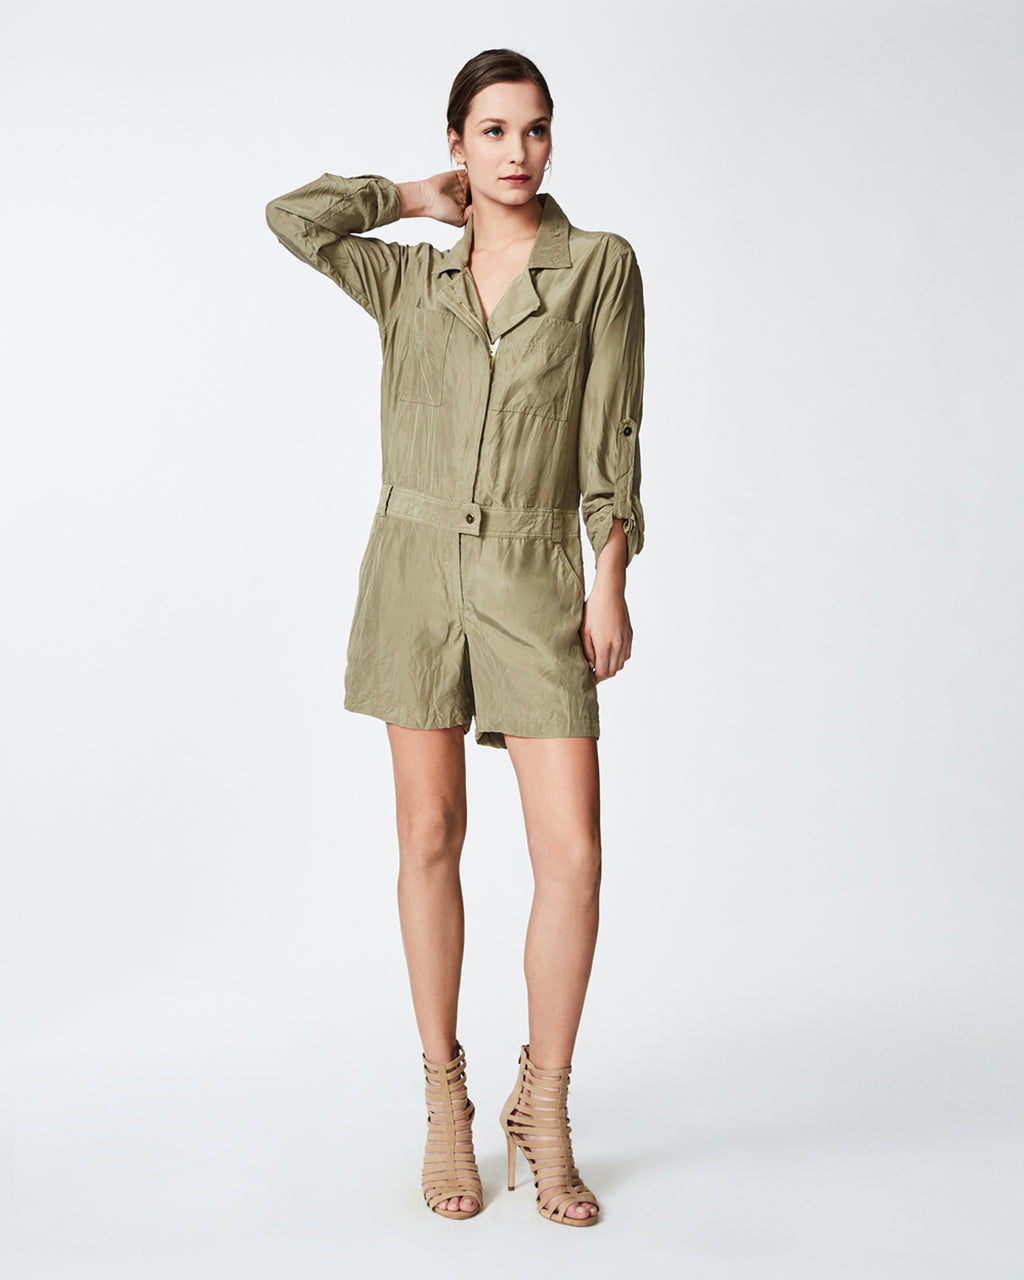 BP10234 - MOTO ROMPER - bottoms - pants - In a soft and lightweight silk, this romper features a front zipper for closure. Finished with a collar and two front pockets, this piece is perfect for day to night wear. Pair with open toe sandals for a simple yet trendy look. Unlined. Final Sale